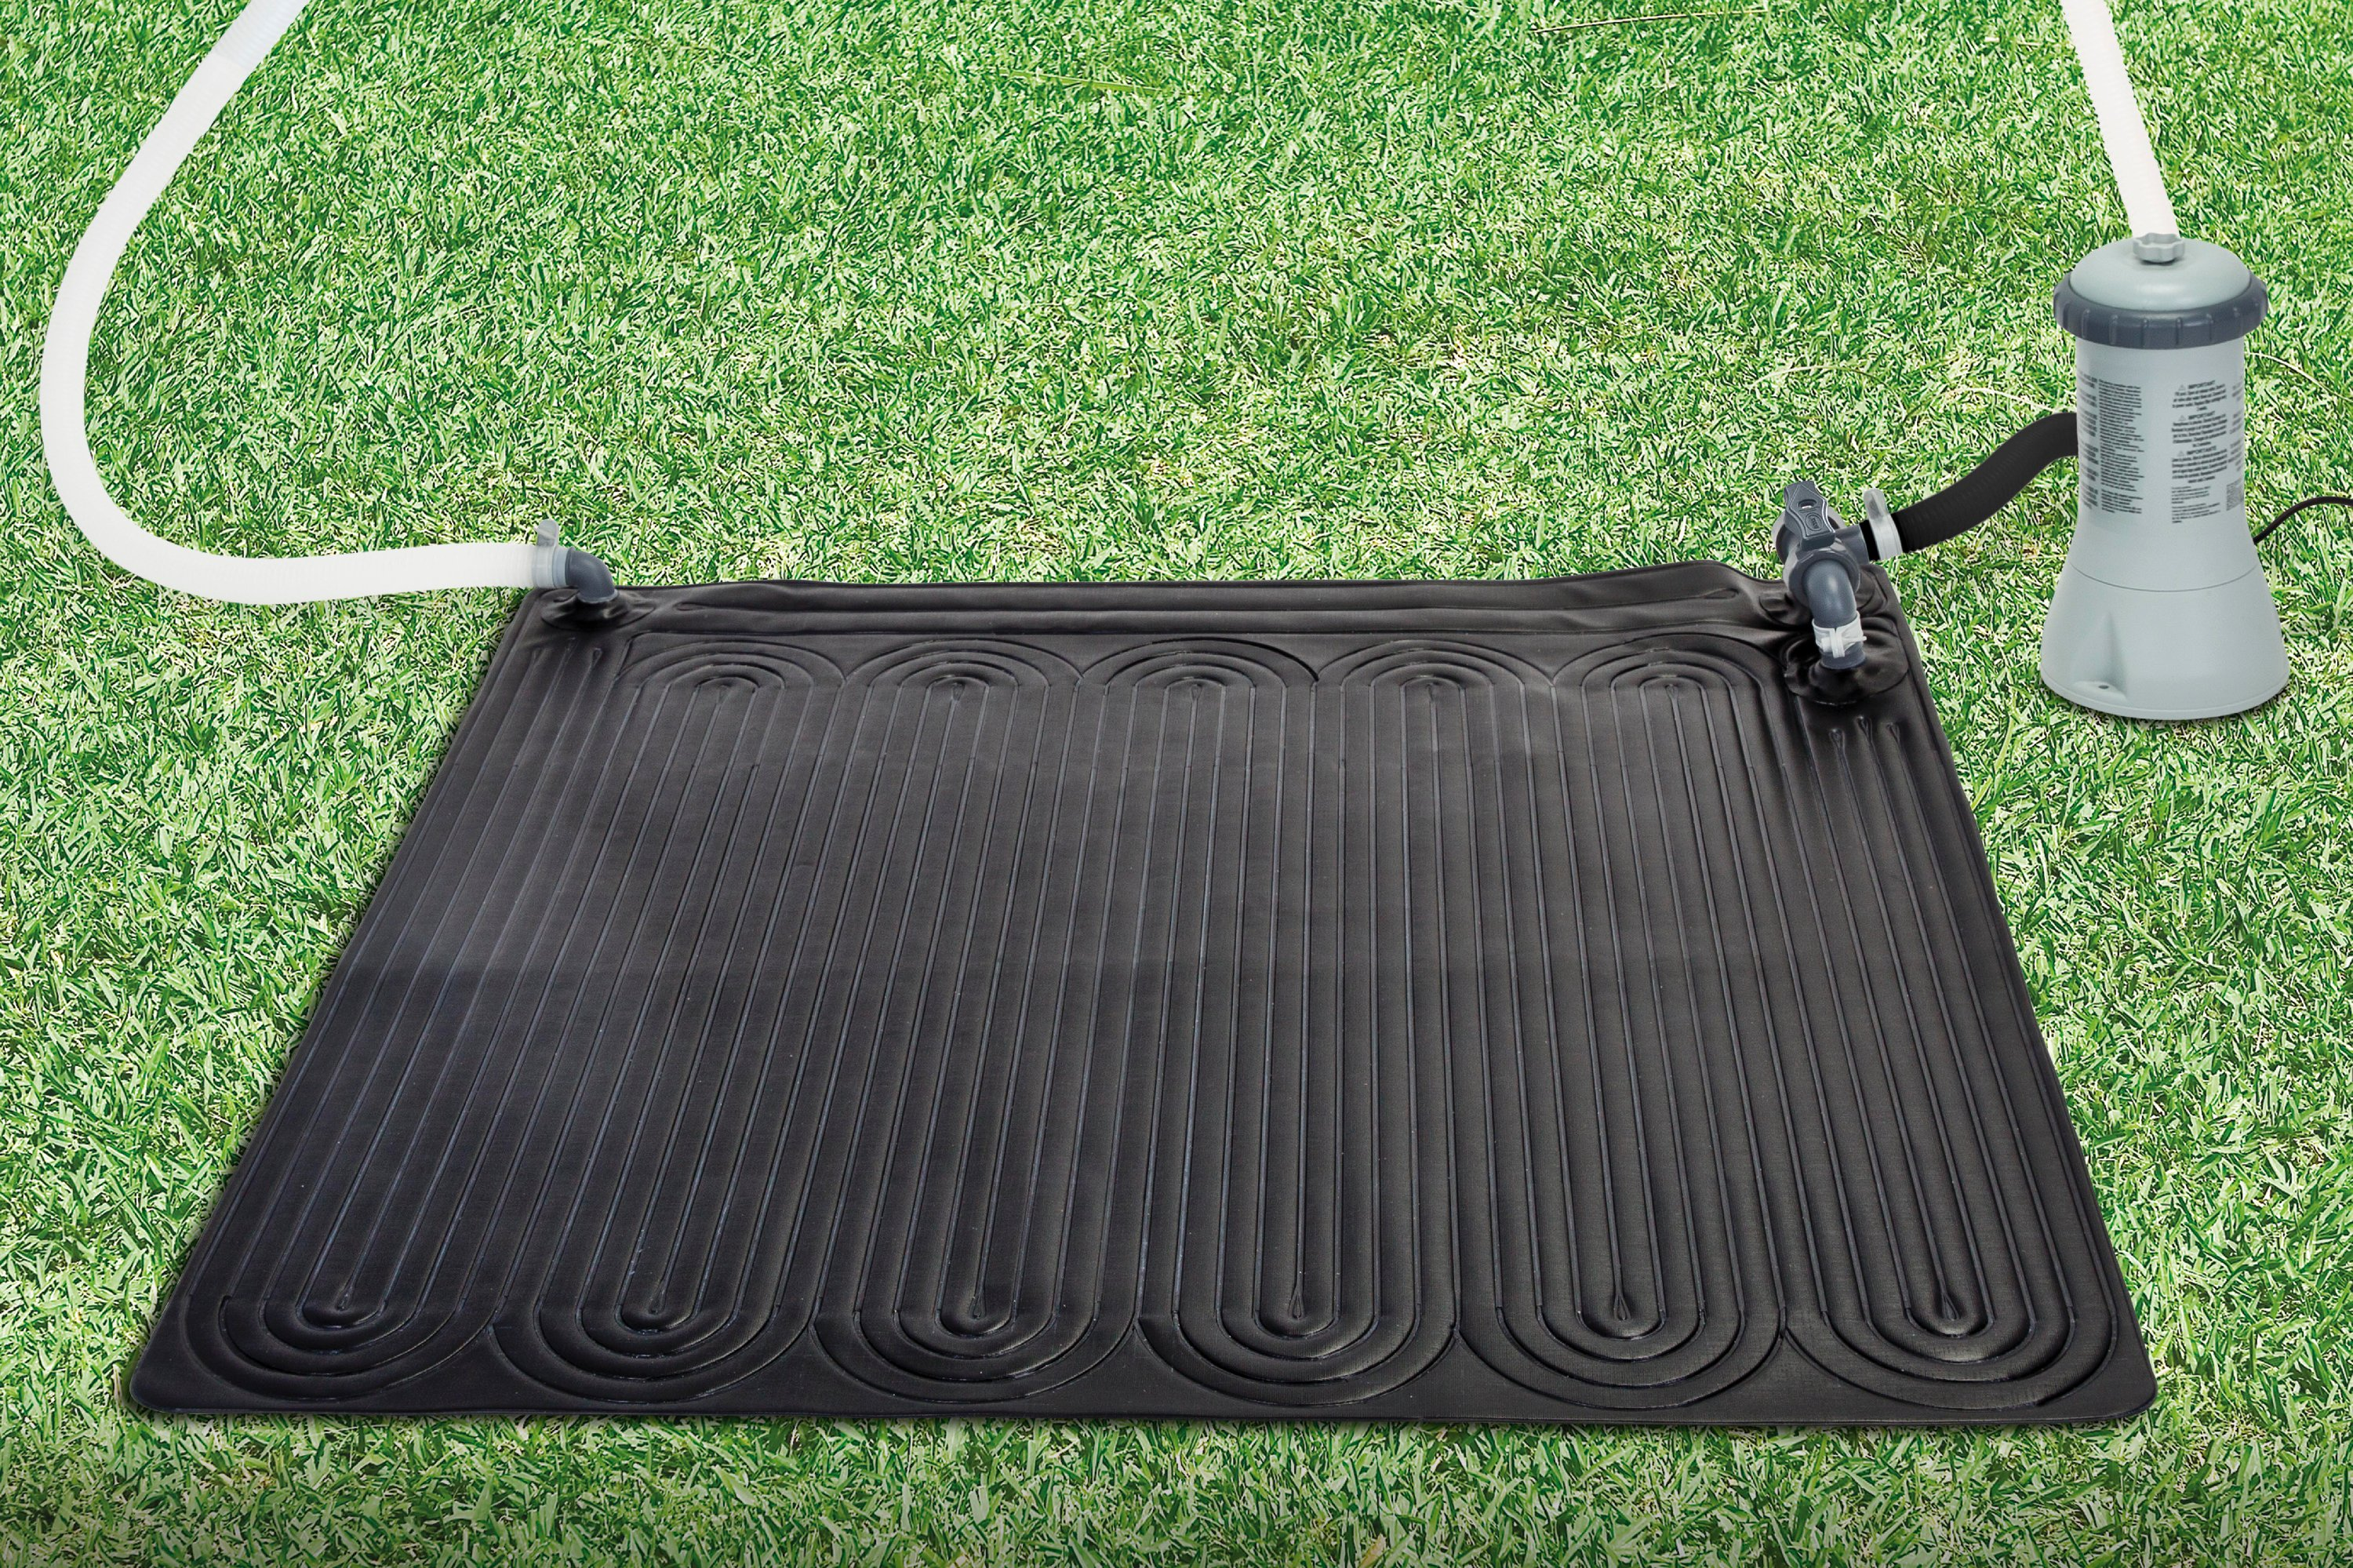 Details about Intex Solar Mat Above Ground Swimming Pool Water Heater Black  28685E